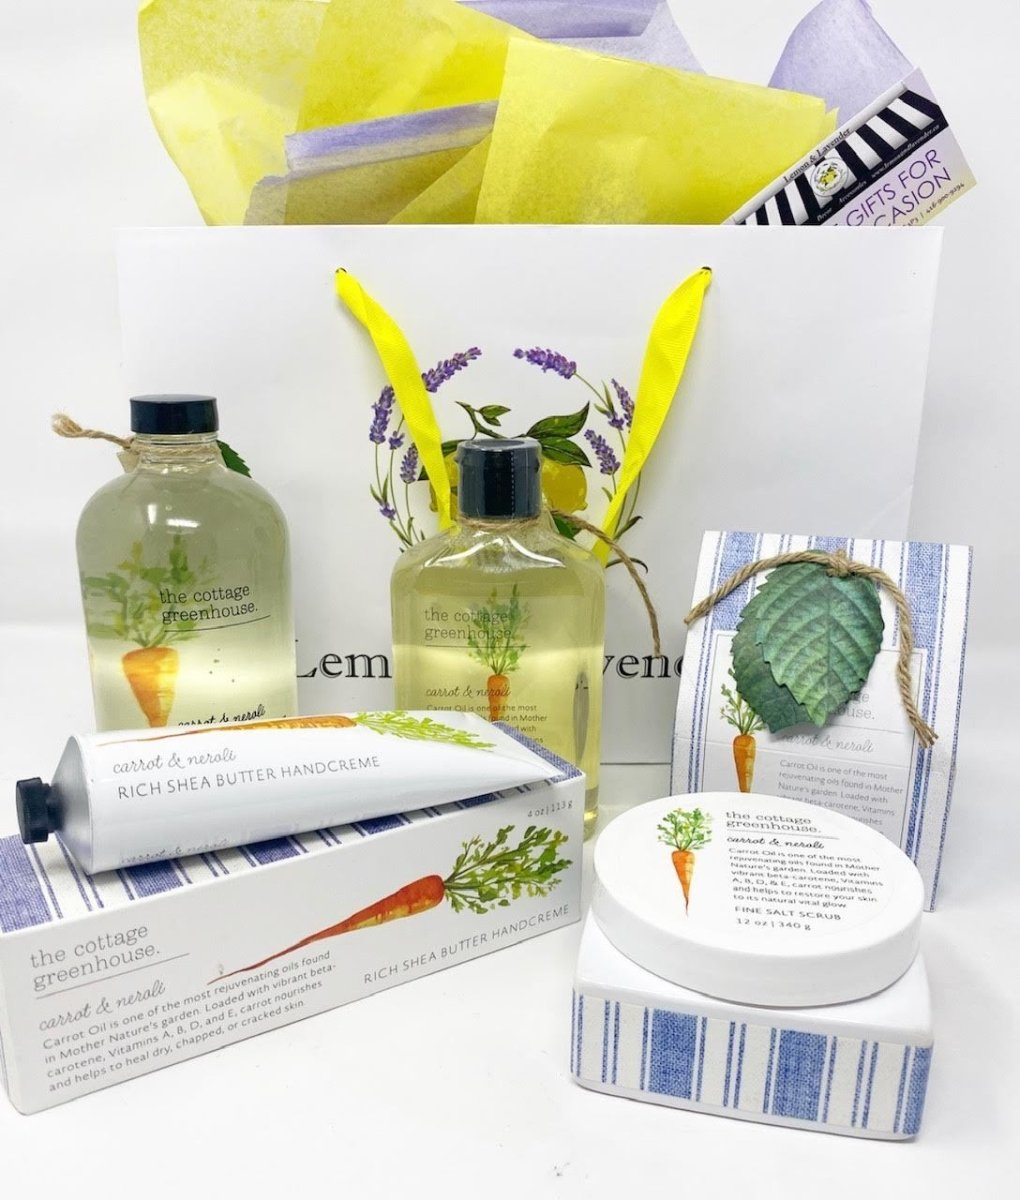 The Cottage Greenhouse Gift Set - Lemon And Lavender Toronto